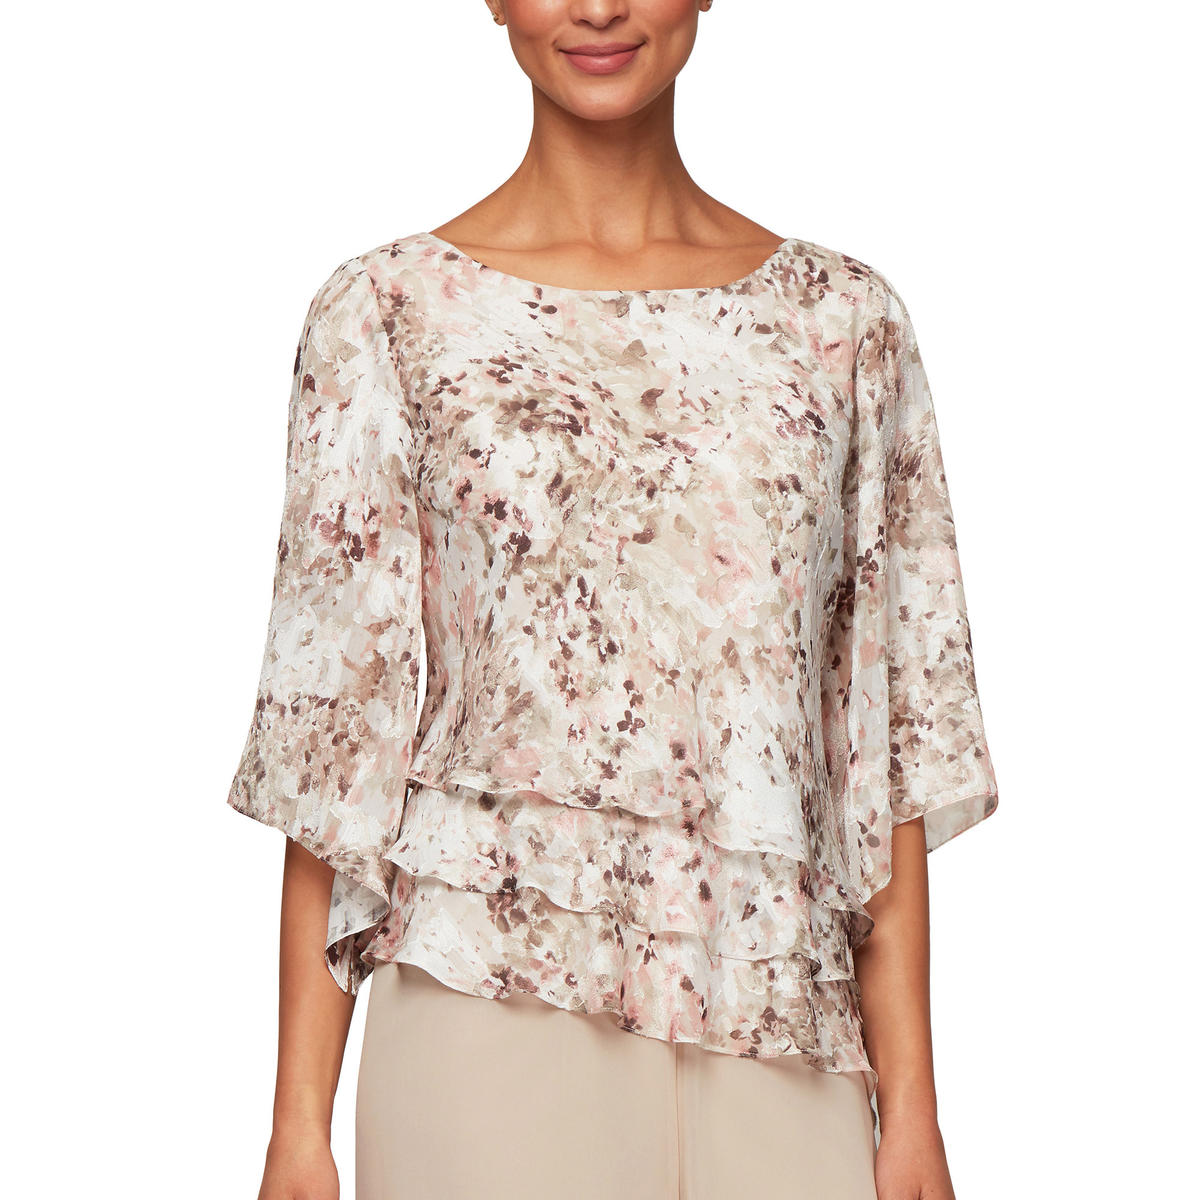 ALEX APPAREL GROUP INC - 3/4 Sleeve Print Blouse